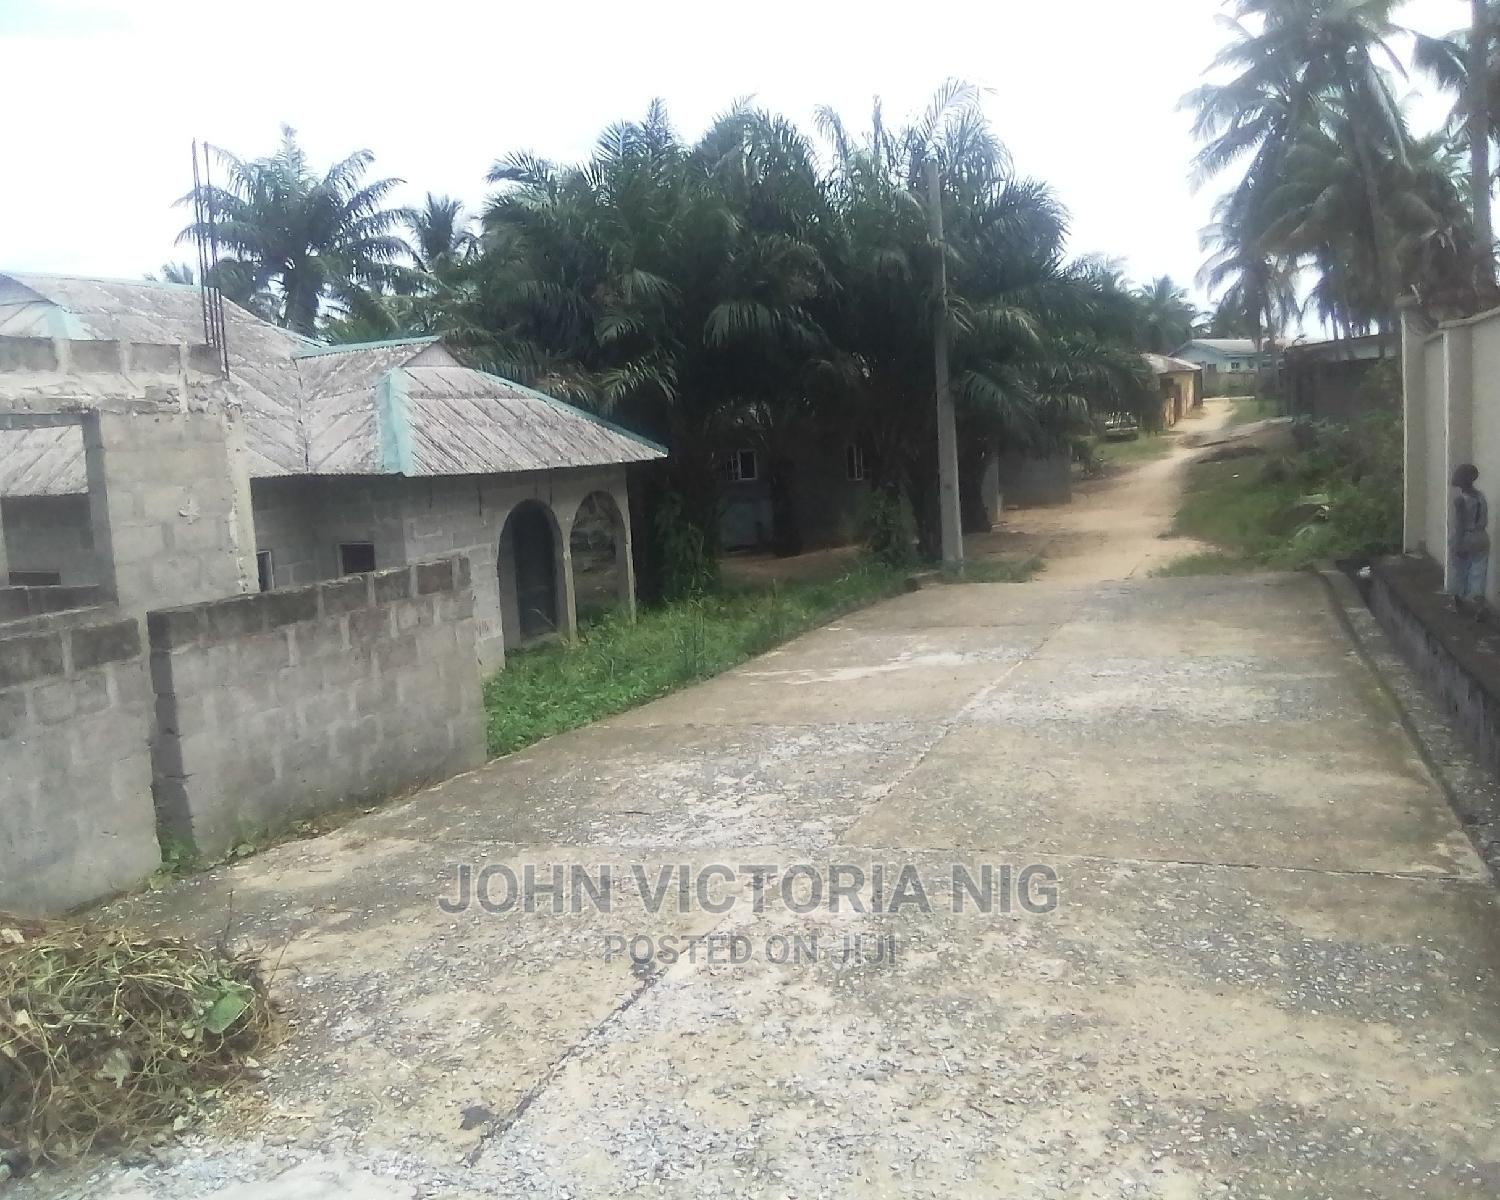 4bdrm Bungalow in Timmy Jaz, Badagry / Badagry for sale   Houses & Apartments For Sale for sale in Badagry / Badagry, Badagry, Nigeria